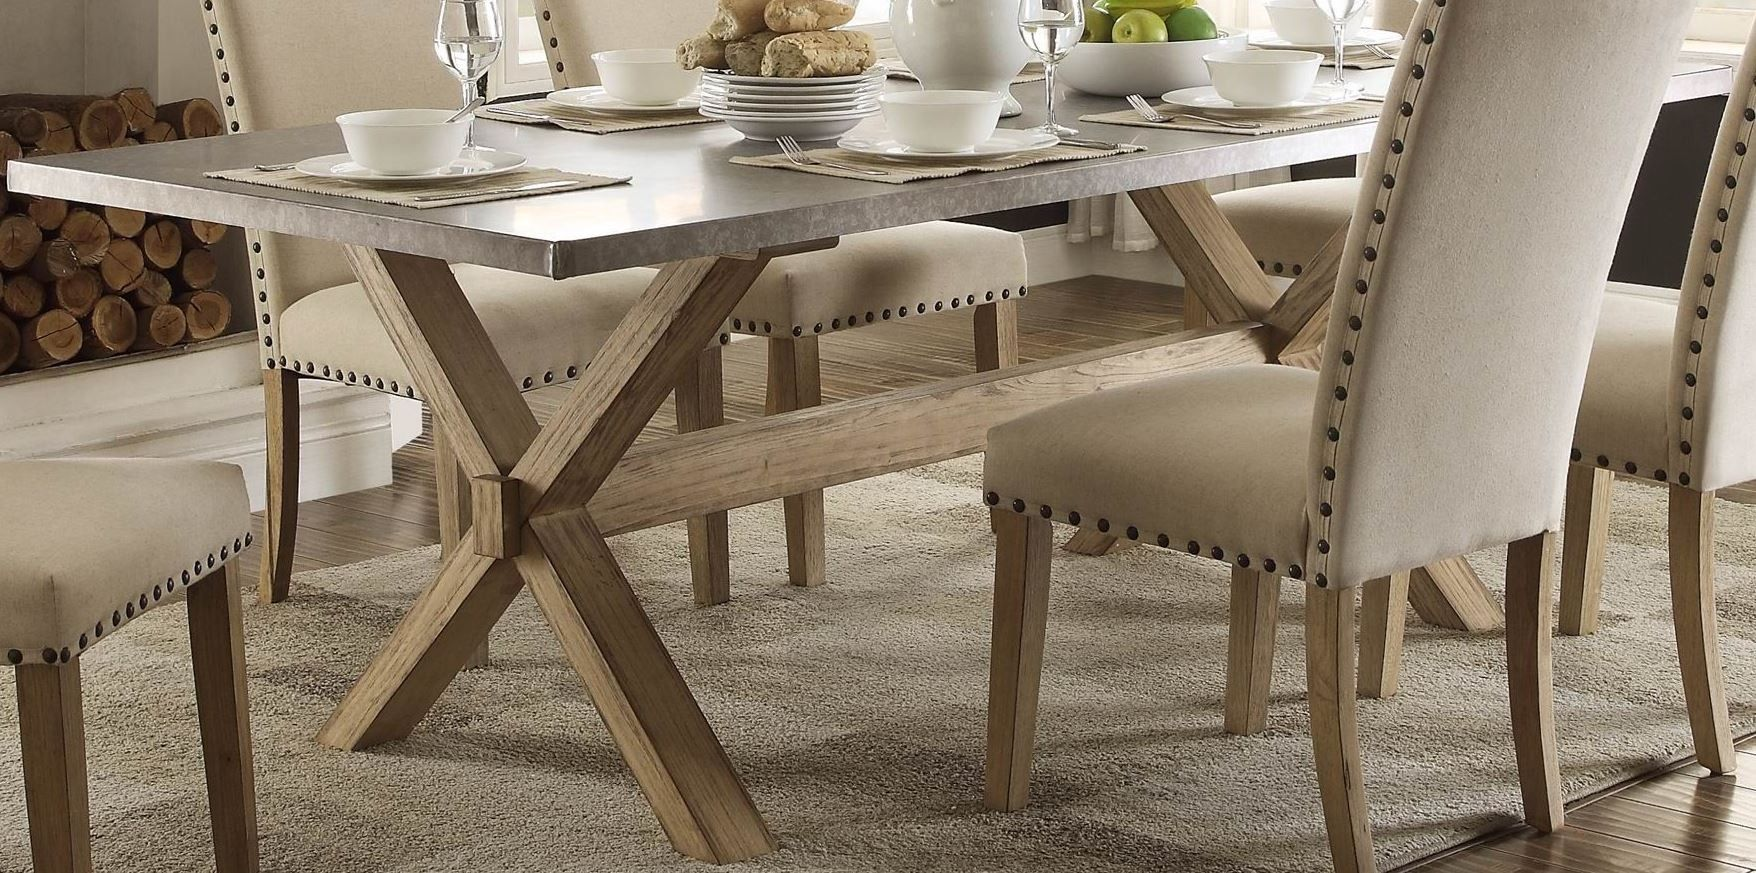 Luella cool weathered oak zinc top dining table